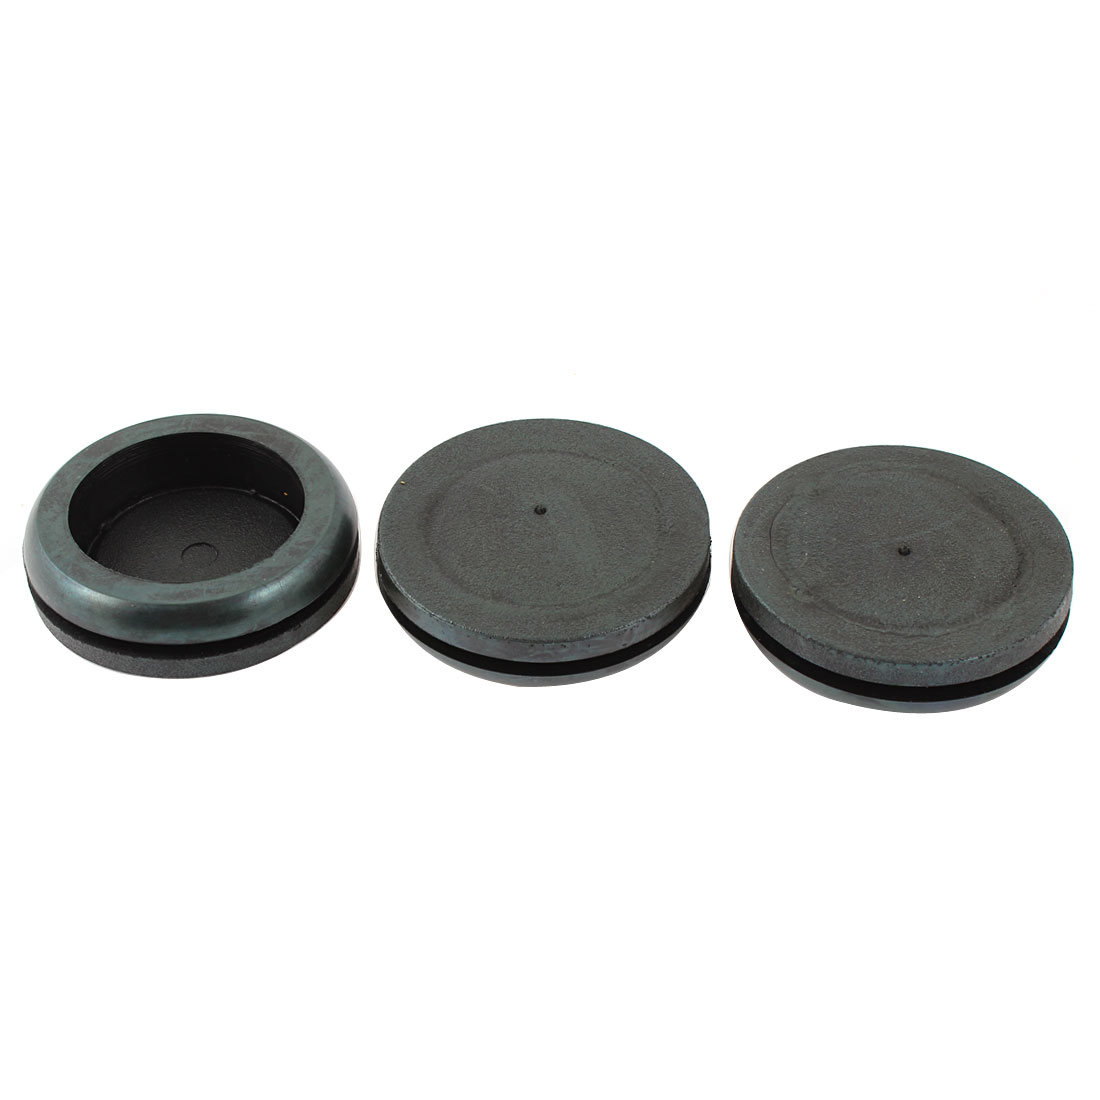 3 Pcs Black Rubber 35mm Slotting Diameter Sealed Sealing Cap for Bottle